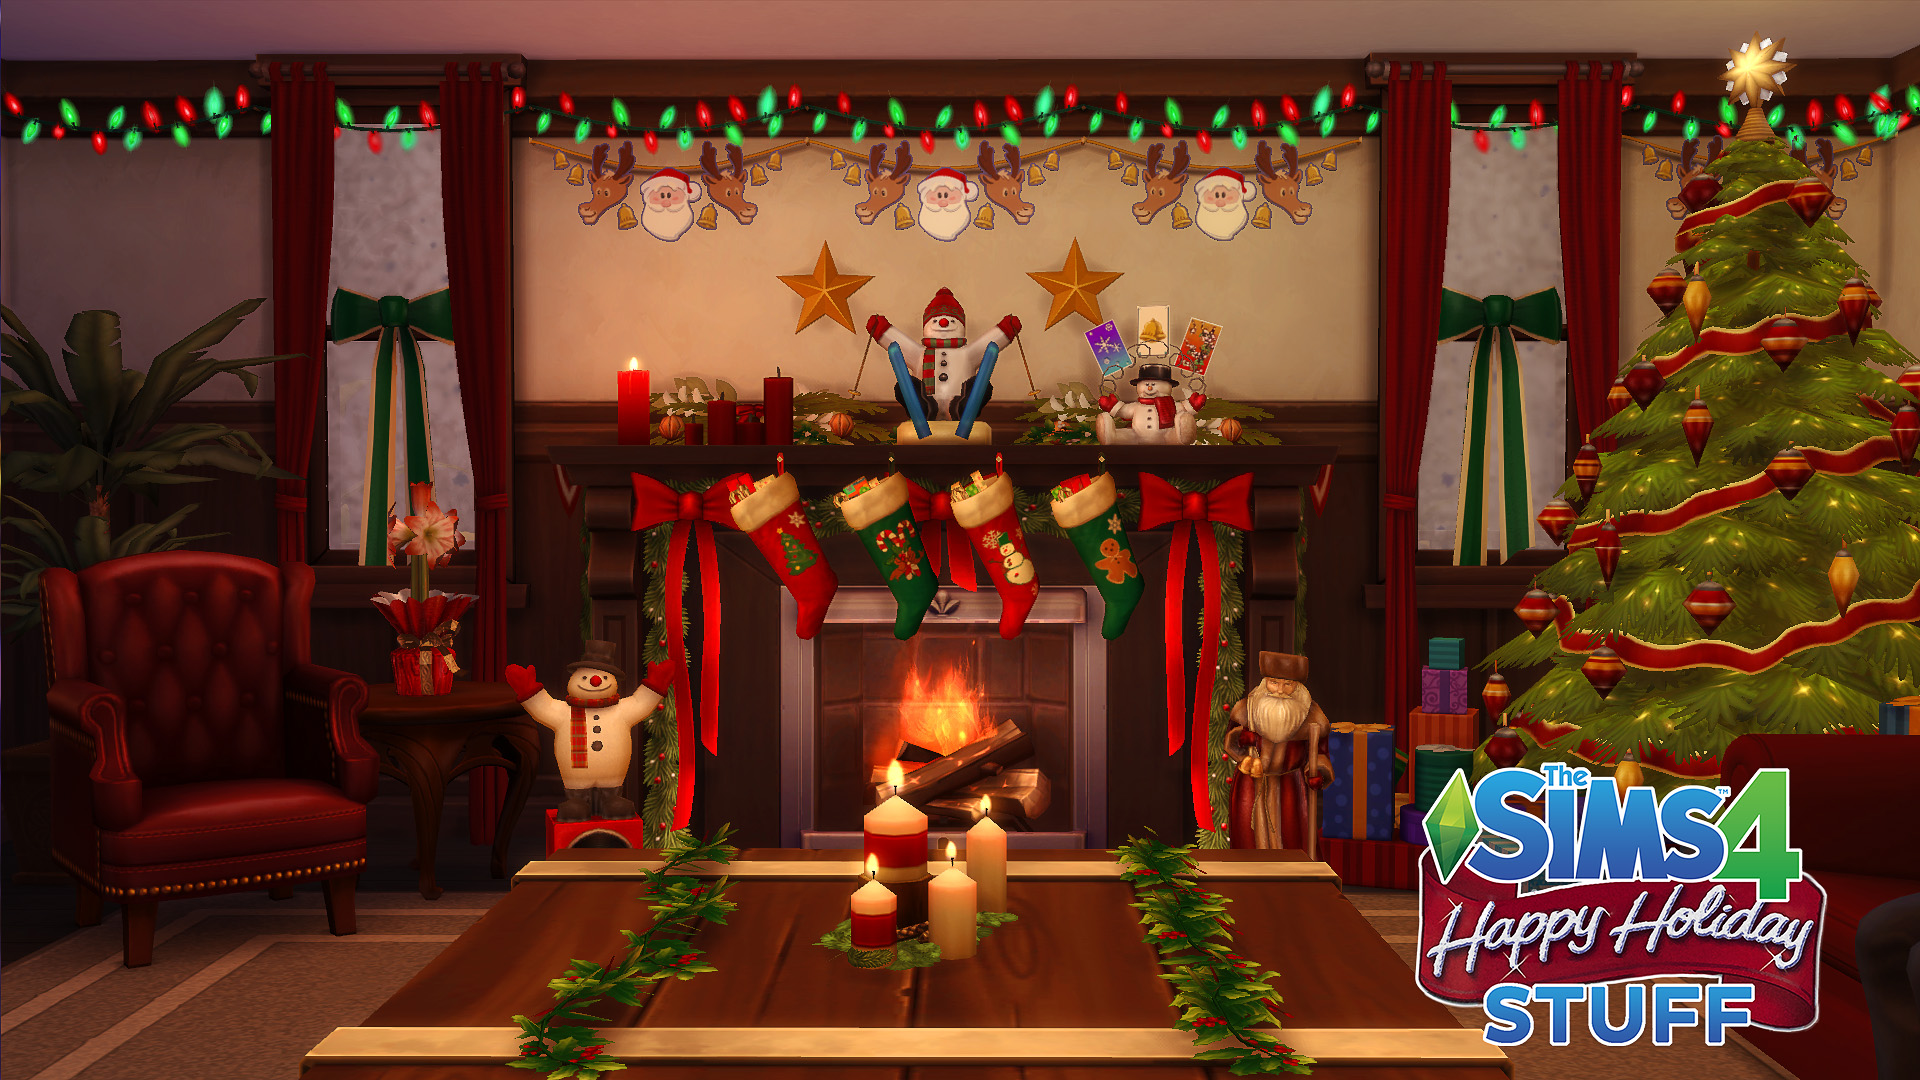 Sims 4 Christmas Update 2020 Mod The Sims   *08/08/2020 UPDATE* The Sims 4 Happy Holiday Stuff!